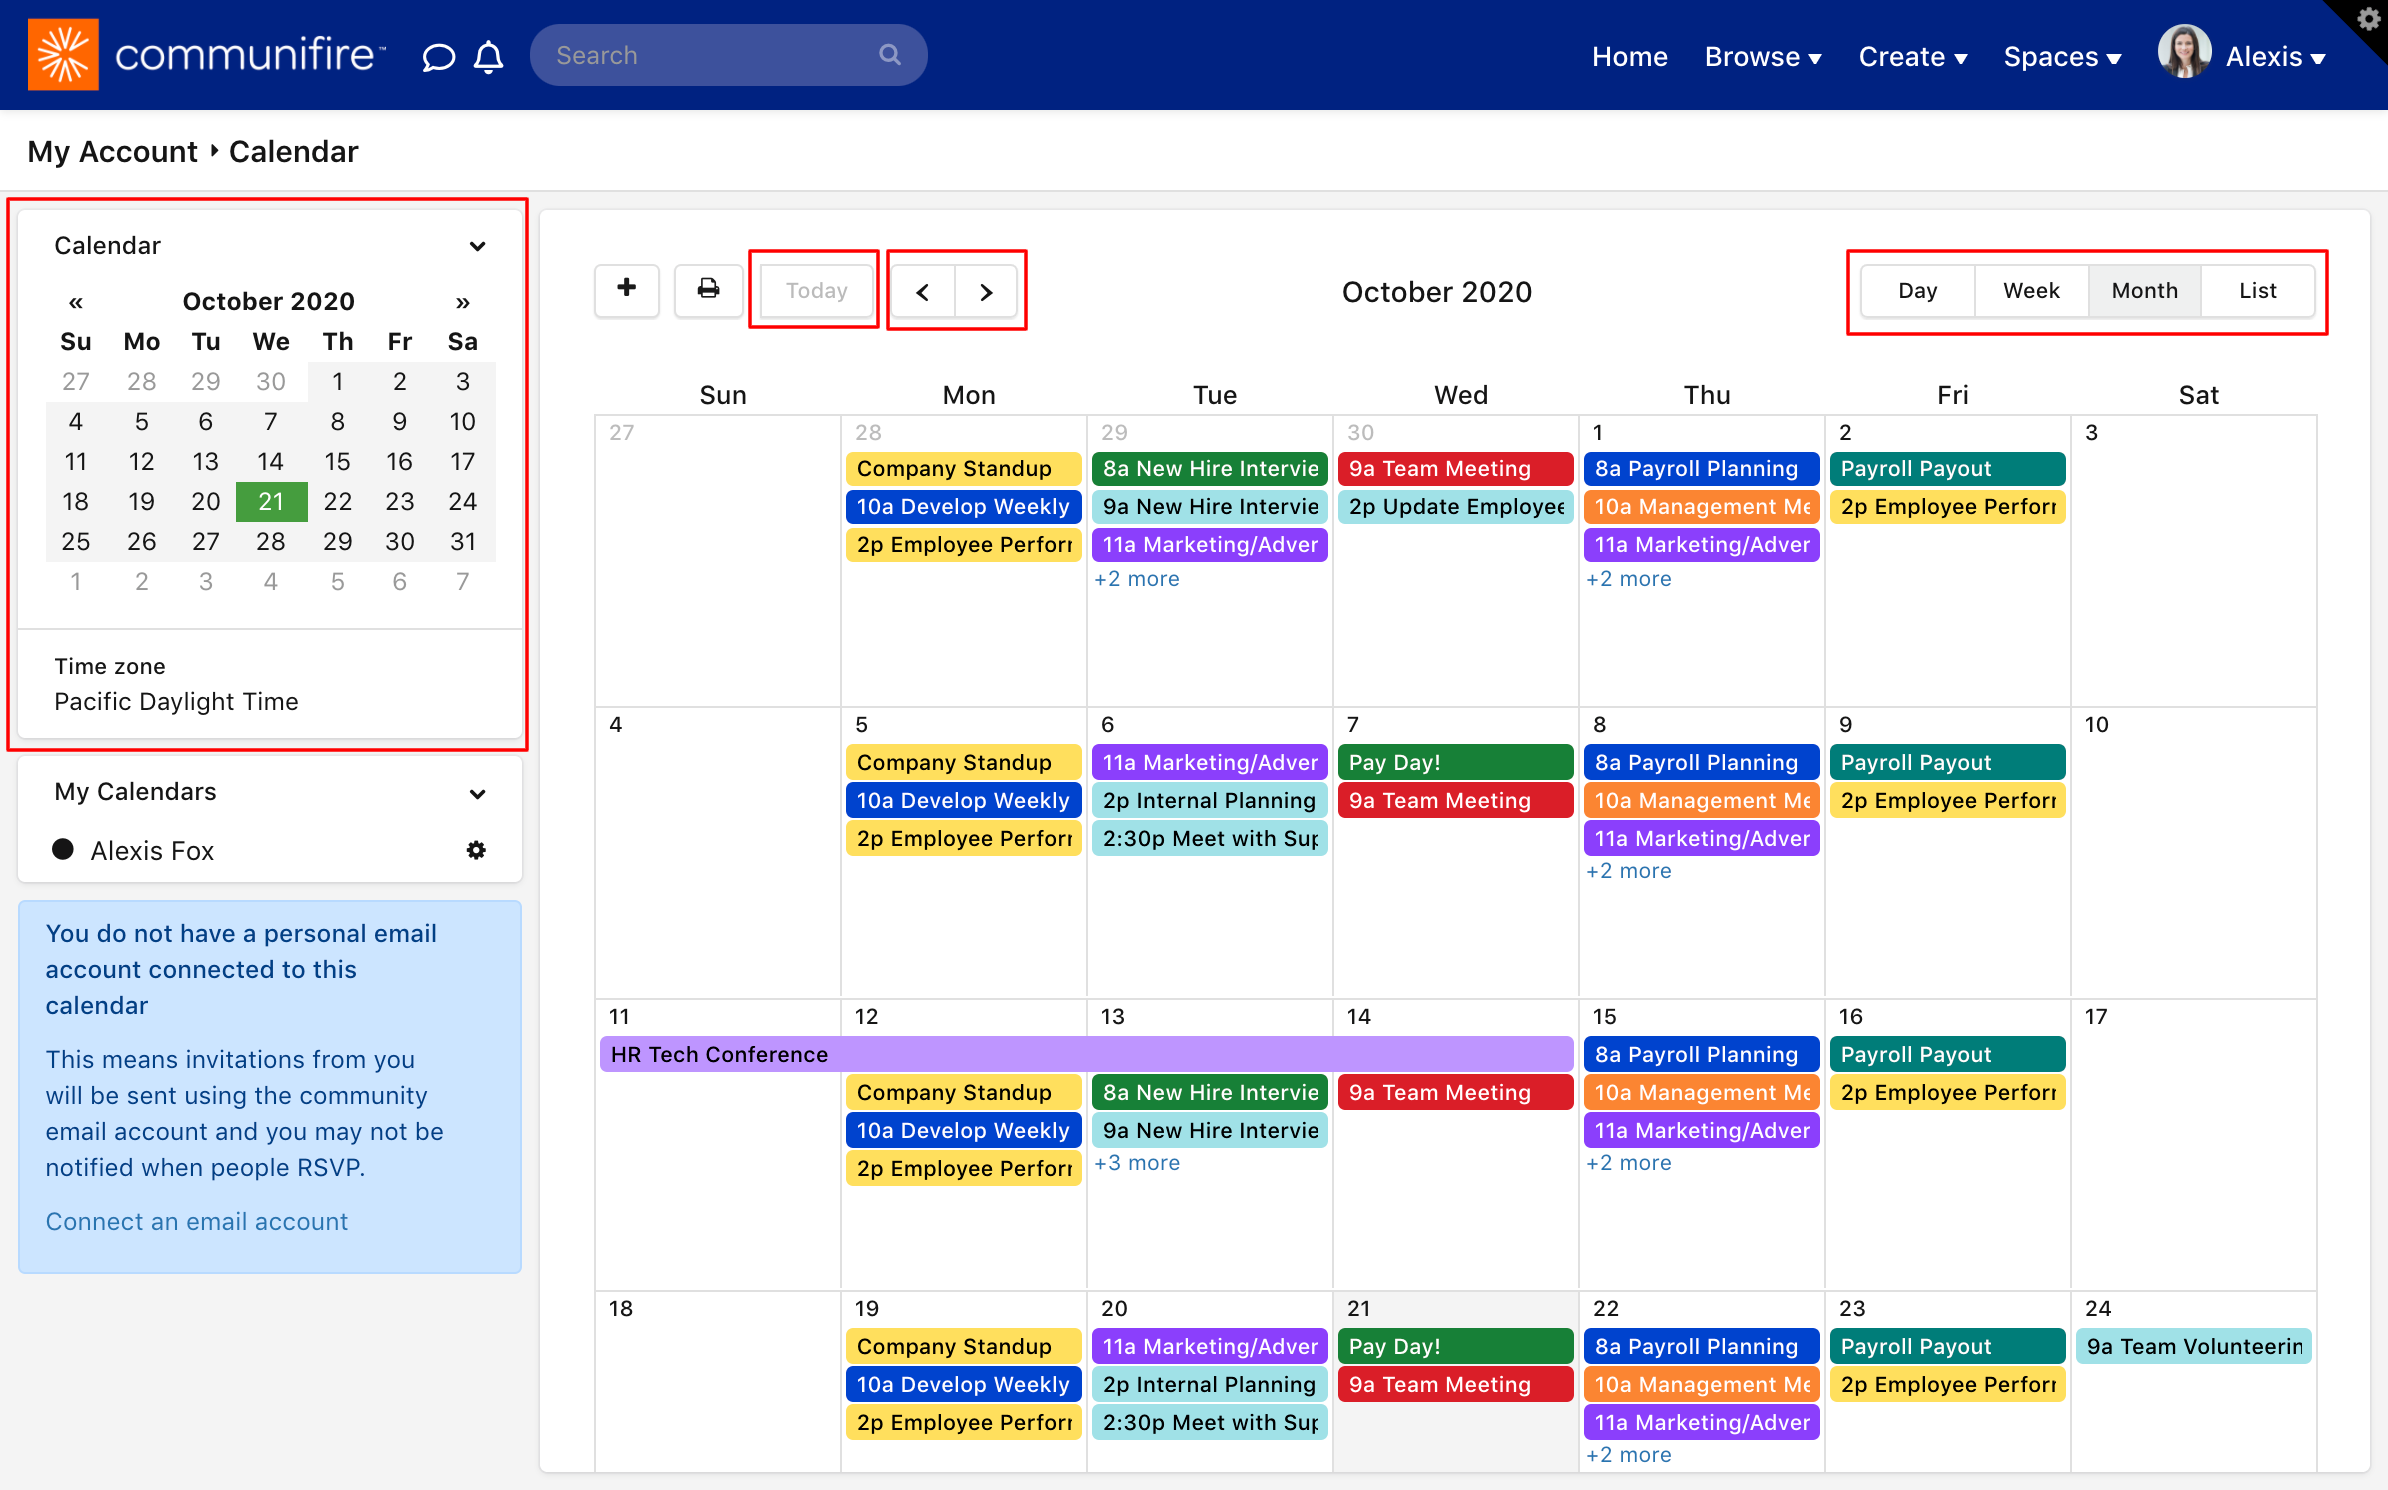 My Calendar with navigation buttons highlighted